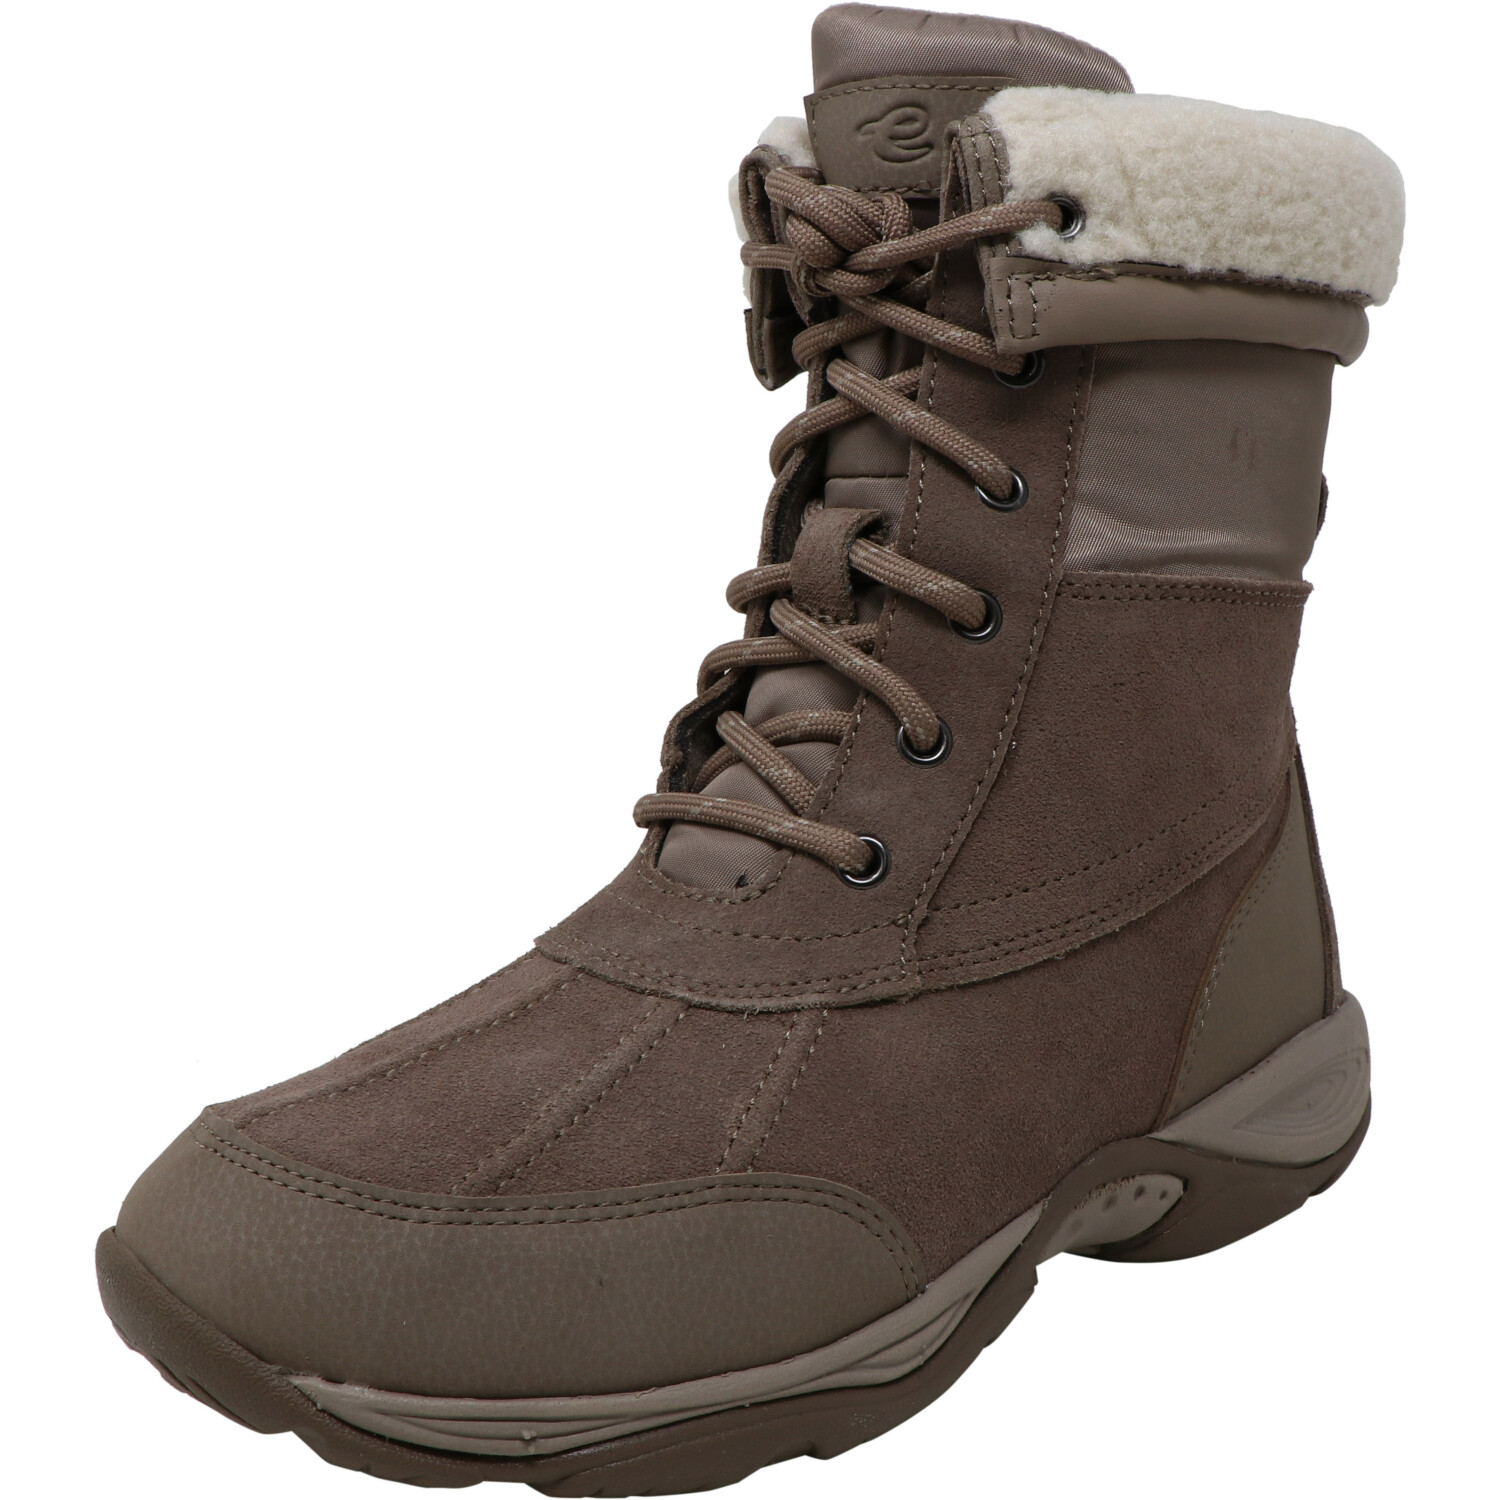 Easy Spirit Women's Elevate Taupe Mid-Calf Leather Boot - 7.5M